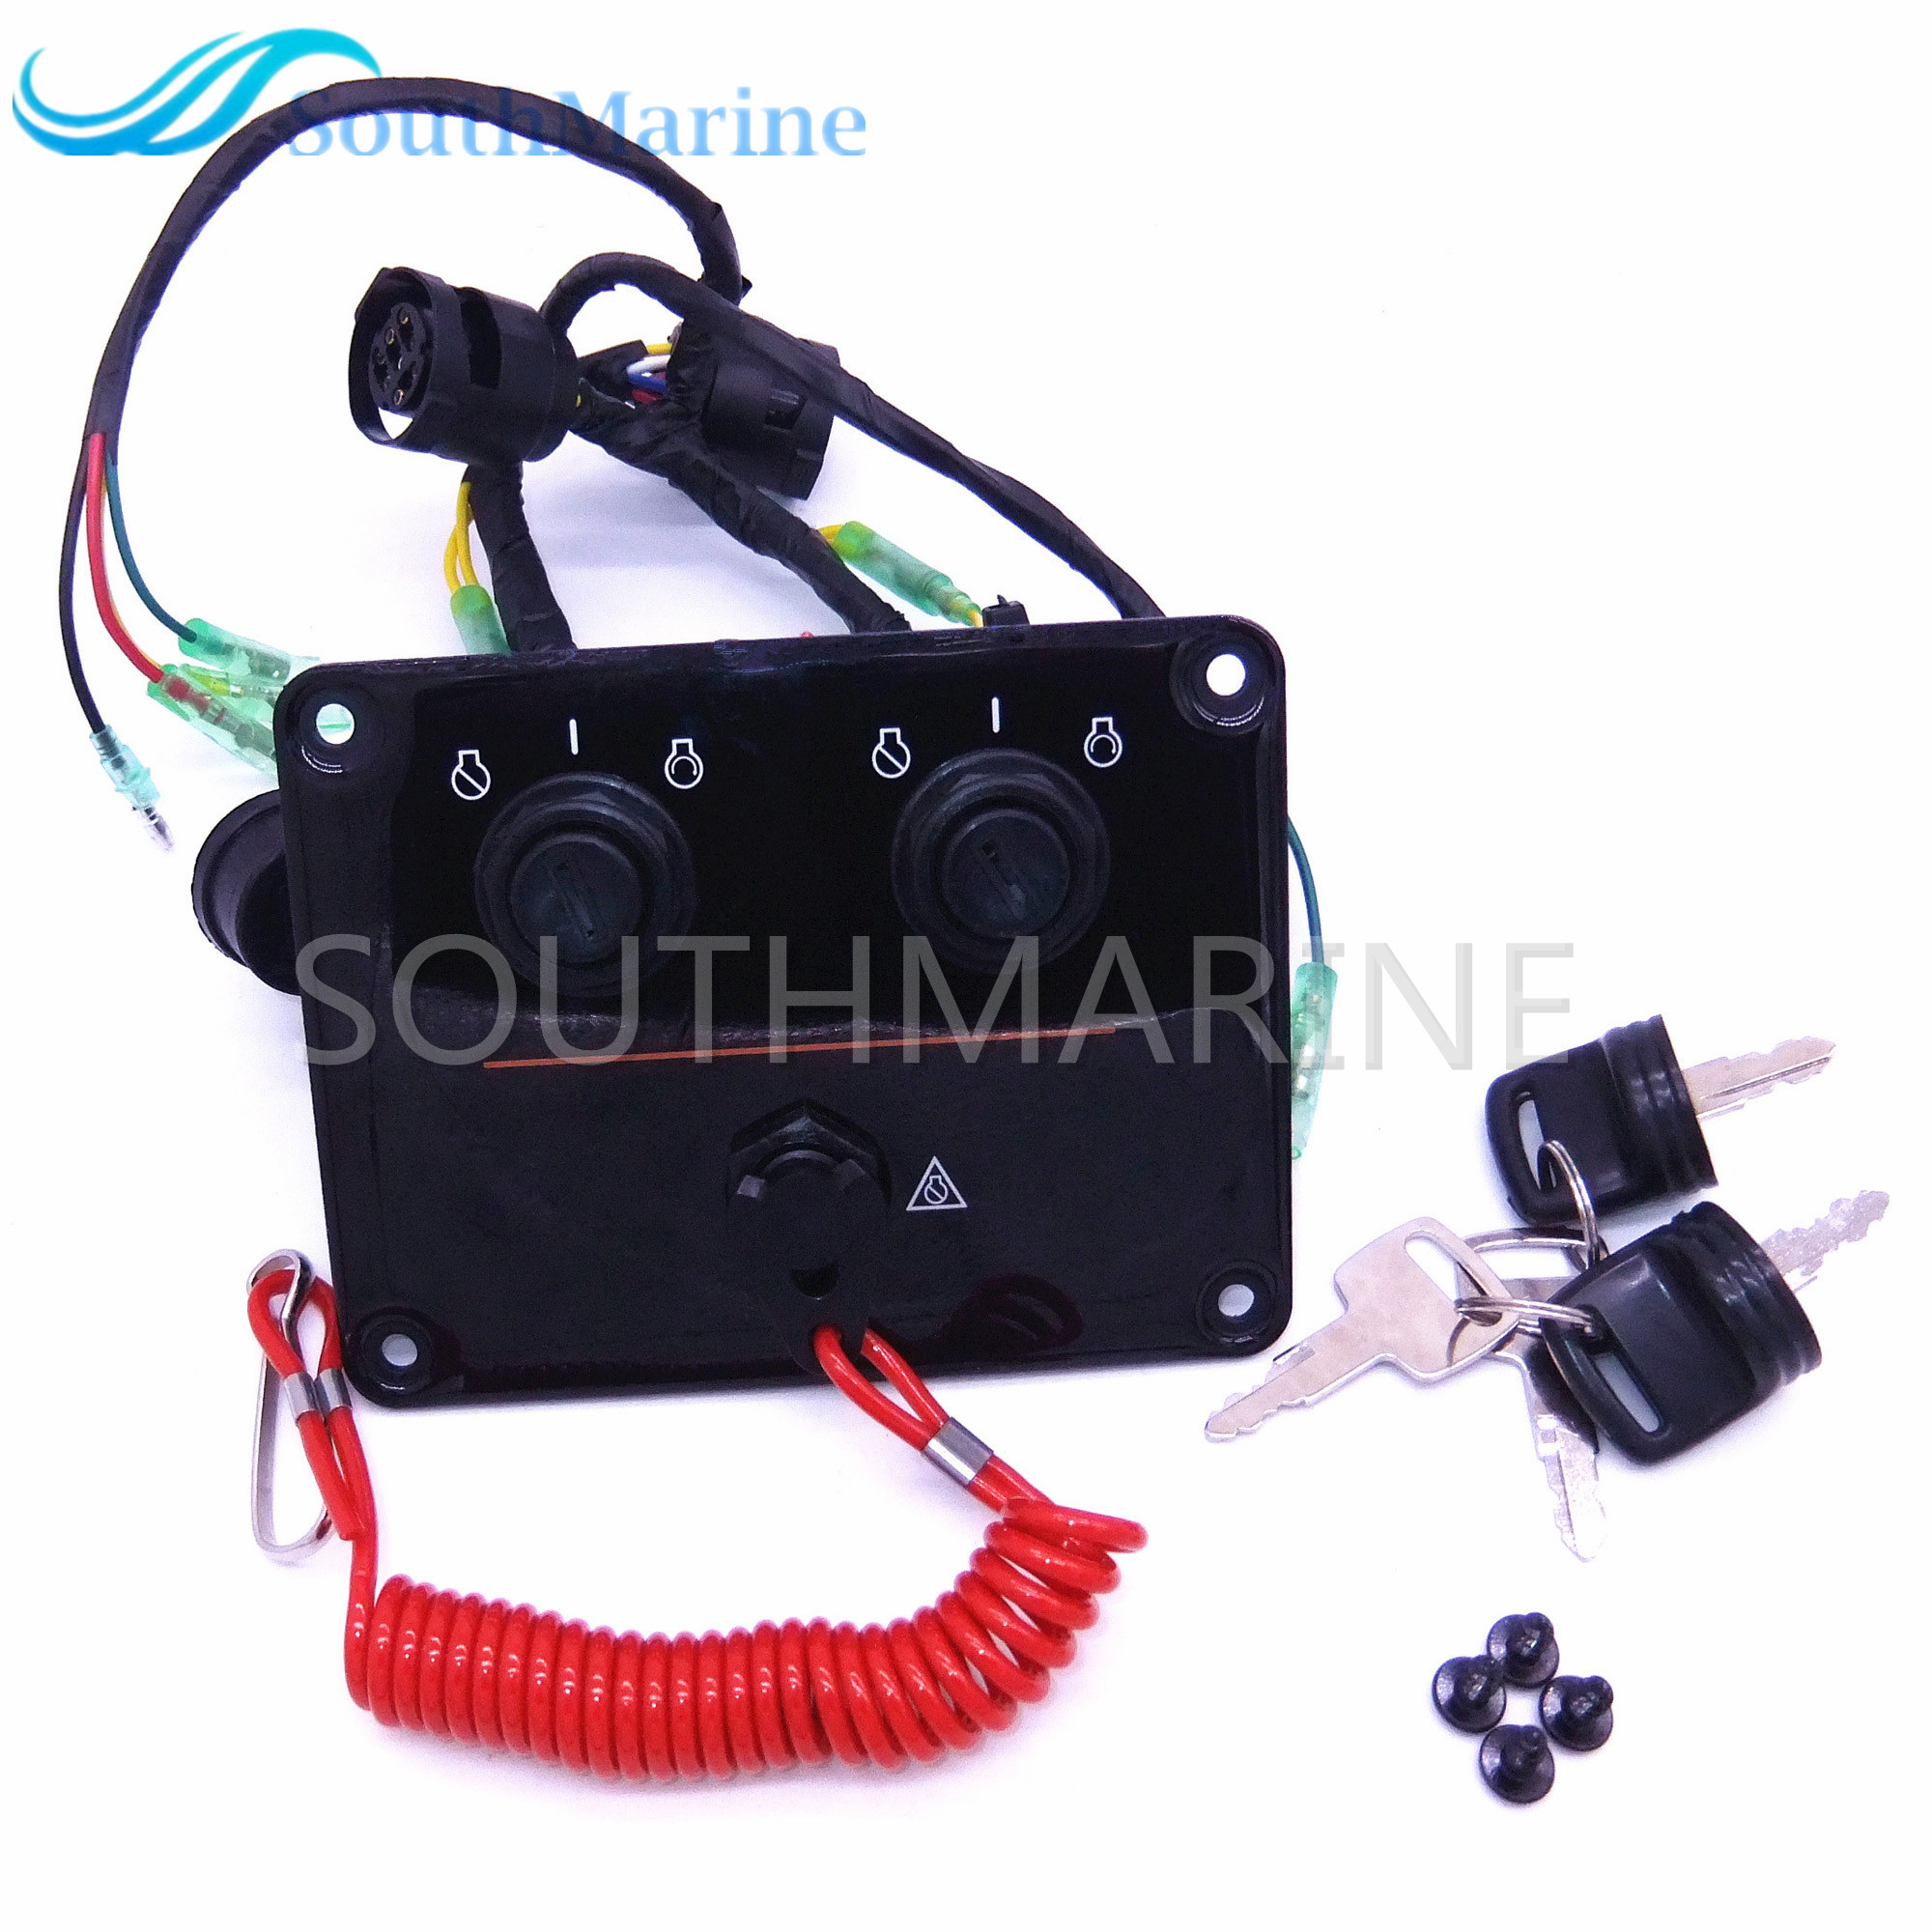 6K1-82570 6K1-82570-12-00 Outboard engine dual twin switch  panel main switch assembly for yamaha boat motor